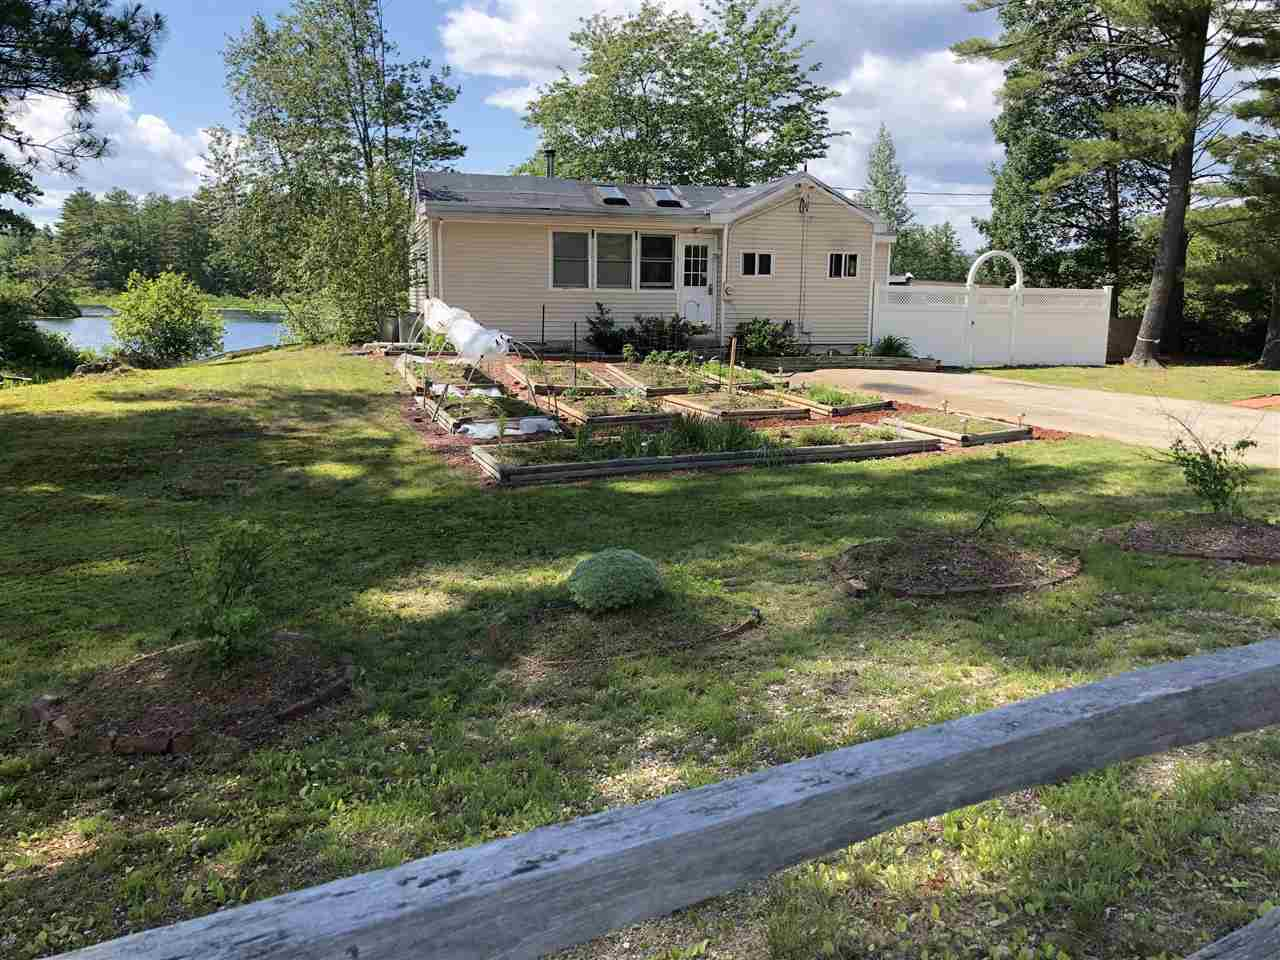 NEW DURHAM NH Home for sale $225,900